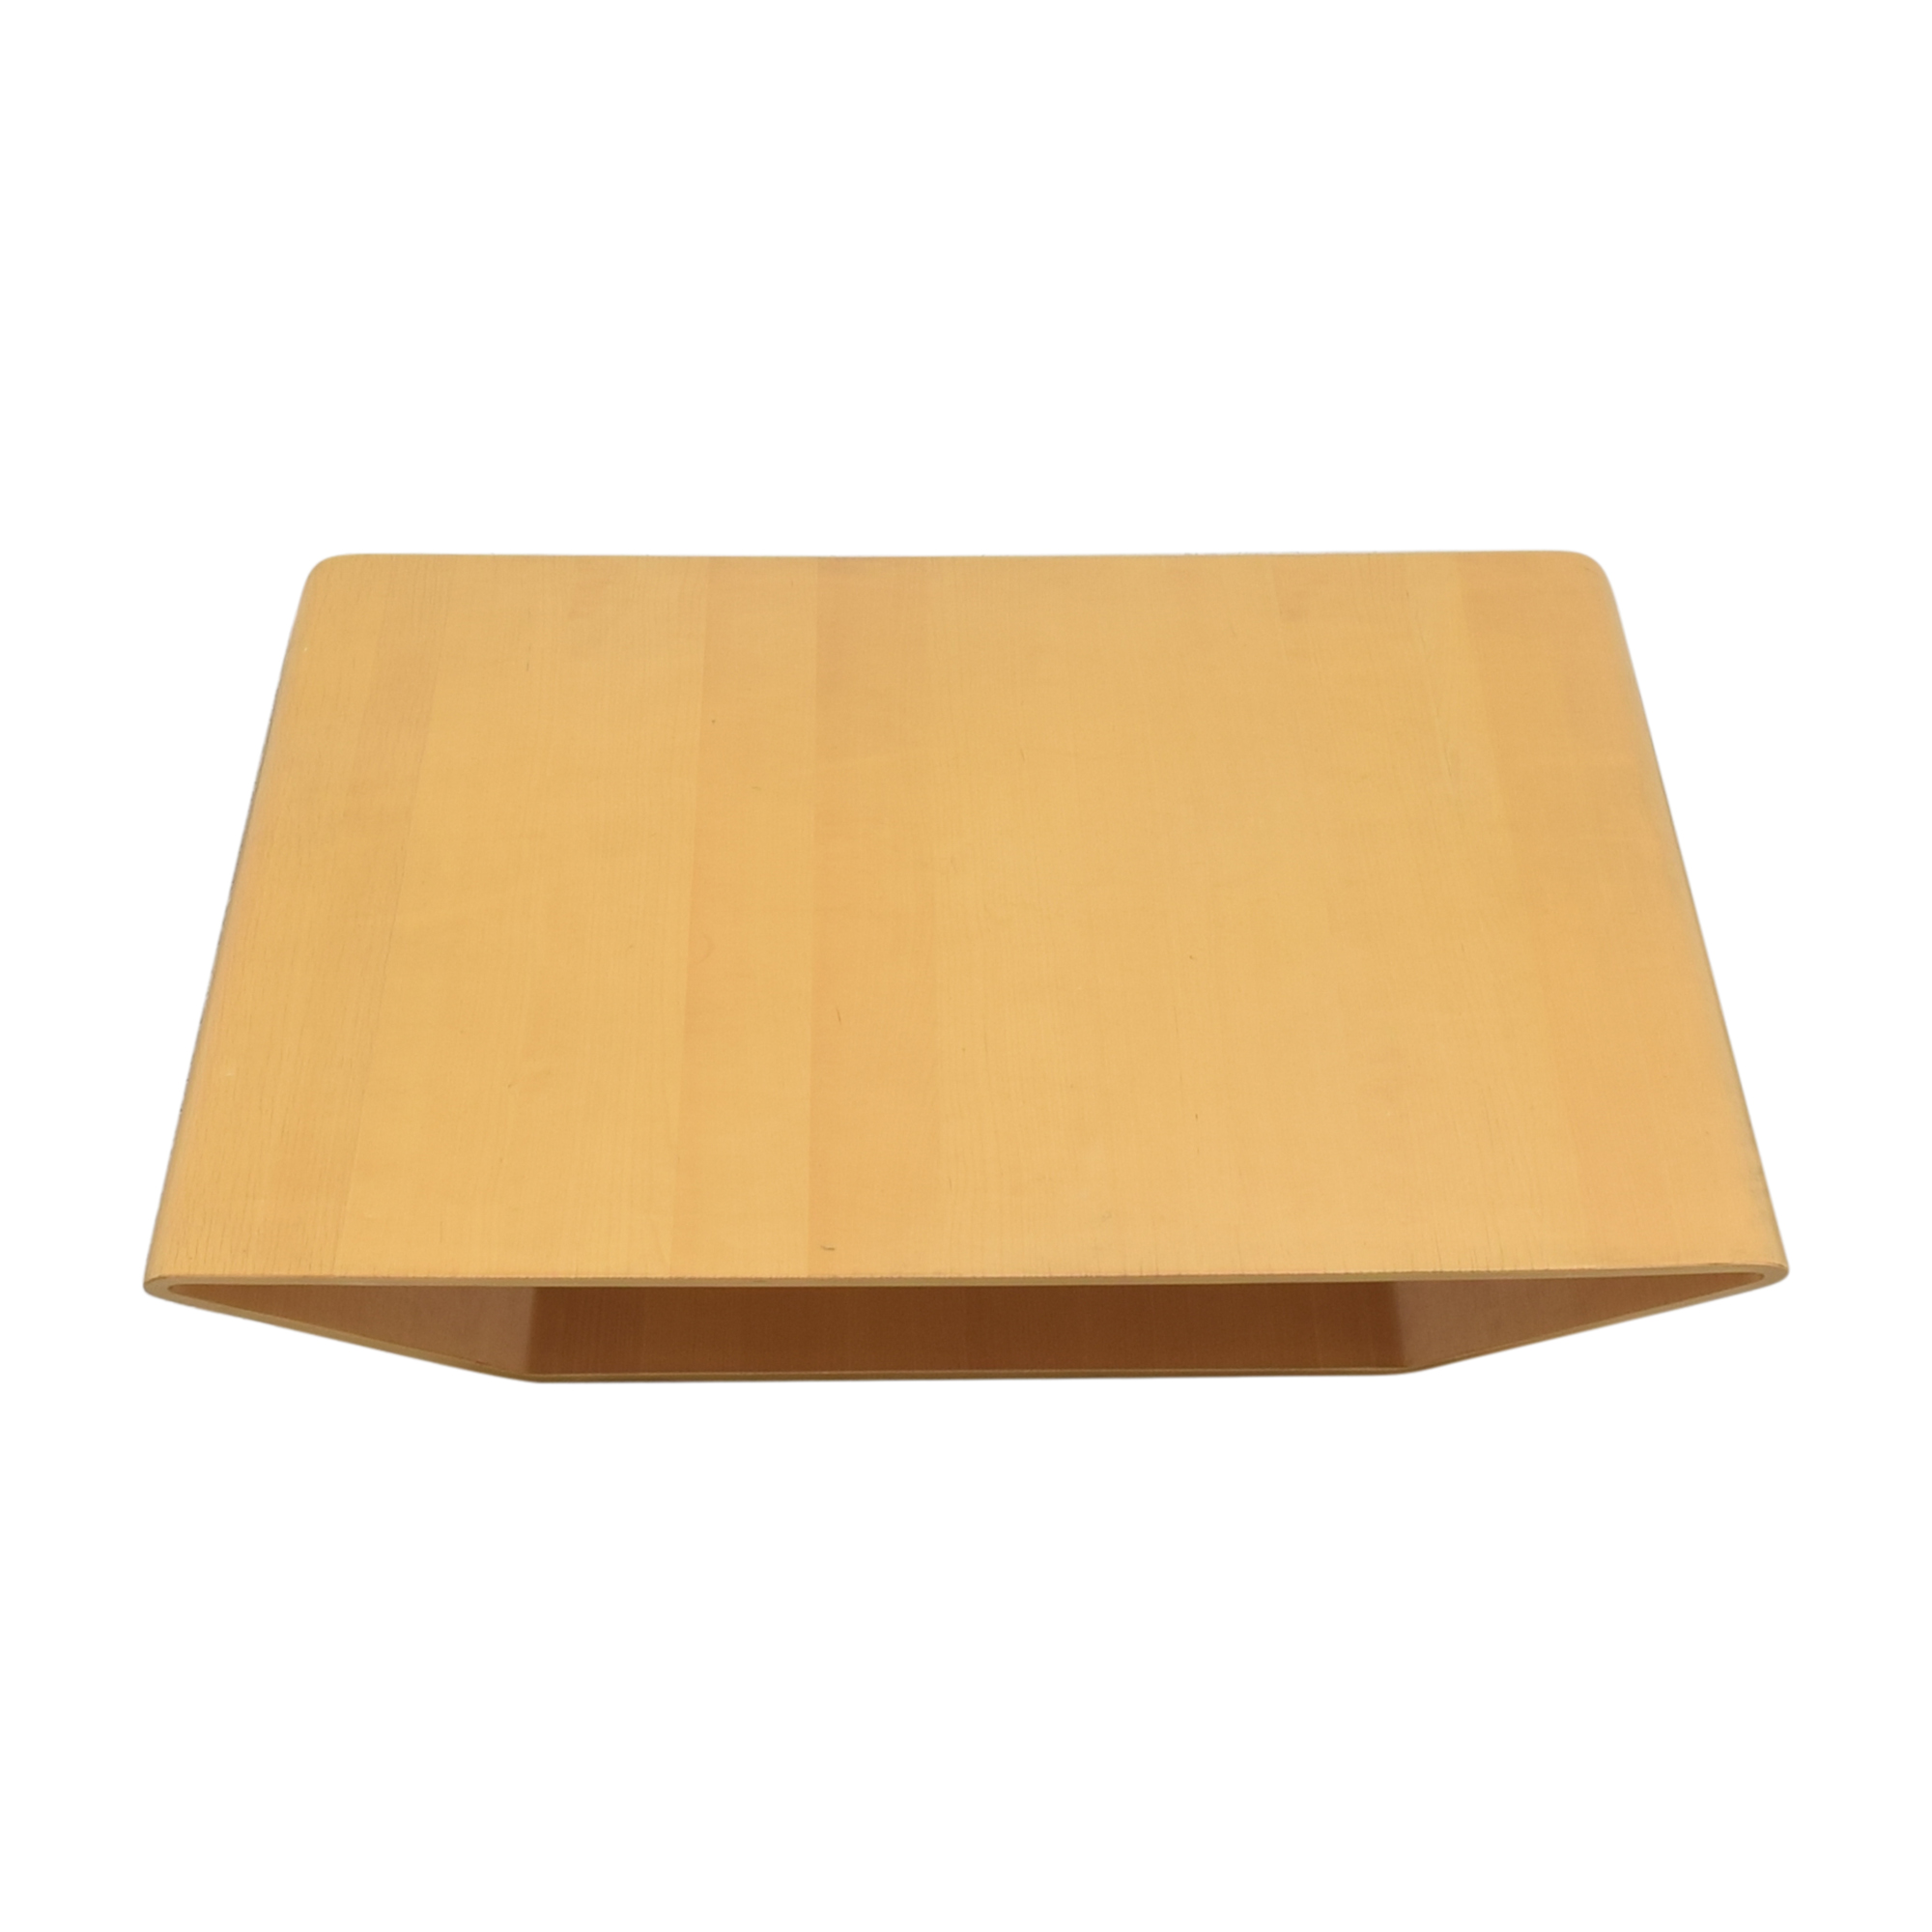 shop Swedese Brasilia Table Swedese Coffee Tables